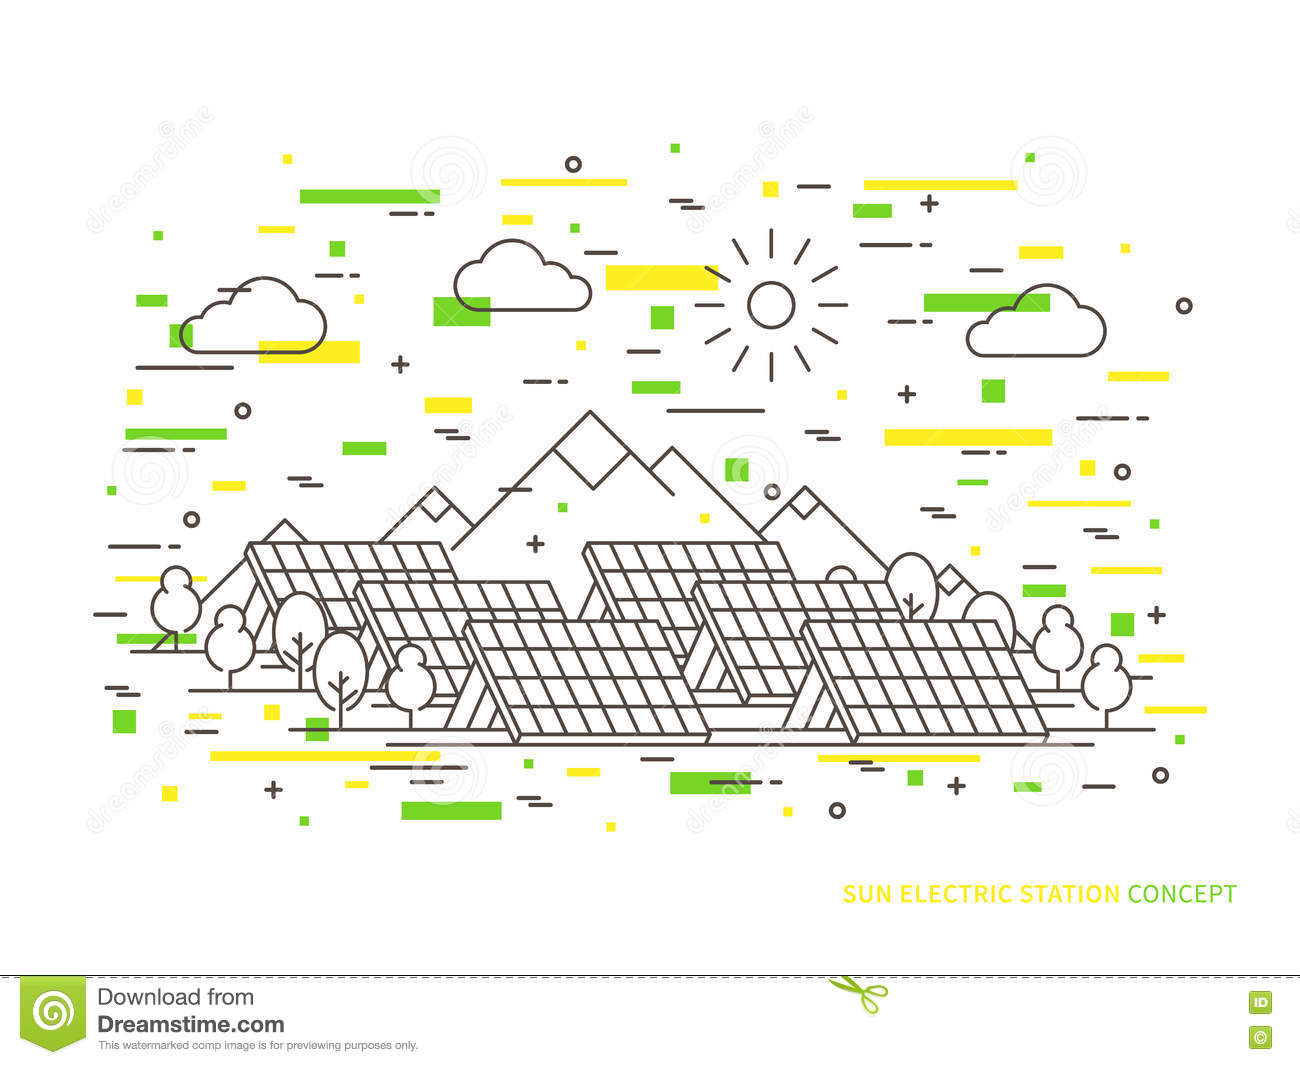 hight resolution of solar power engineering solar power plant creative concept solar electricity solar thermal power system solar cell panel graphic design